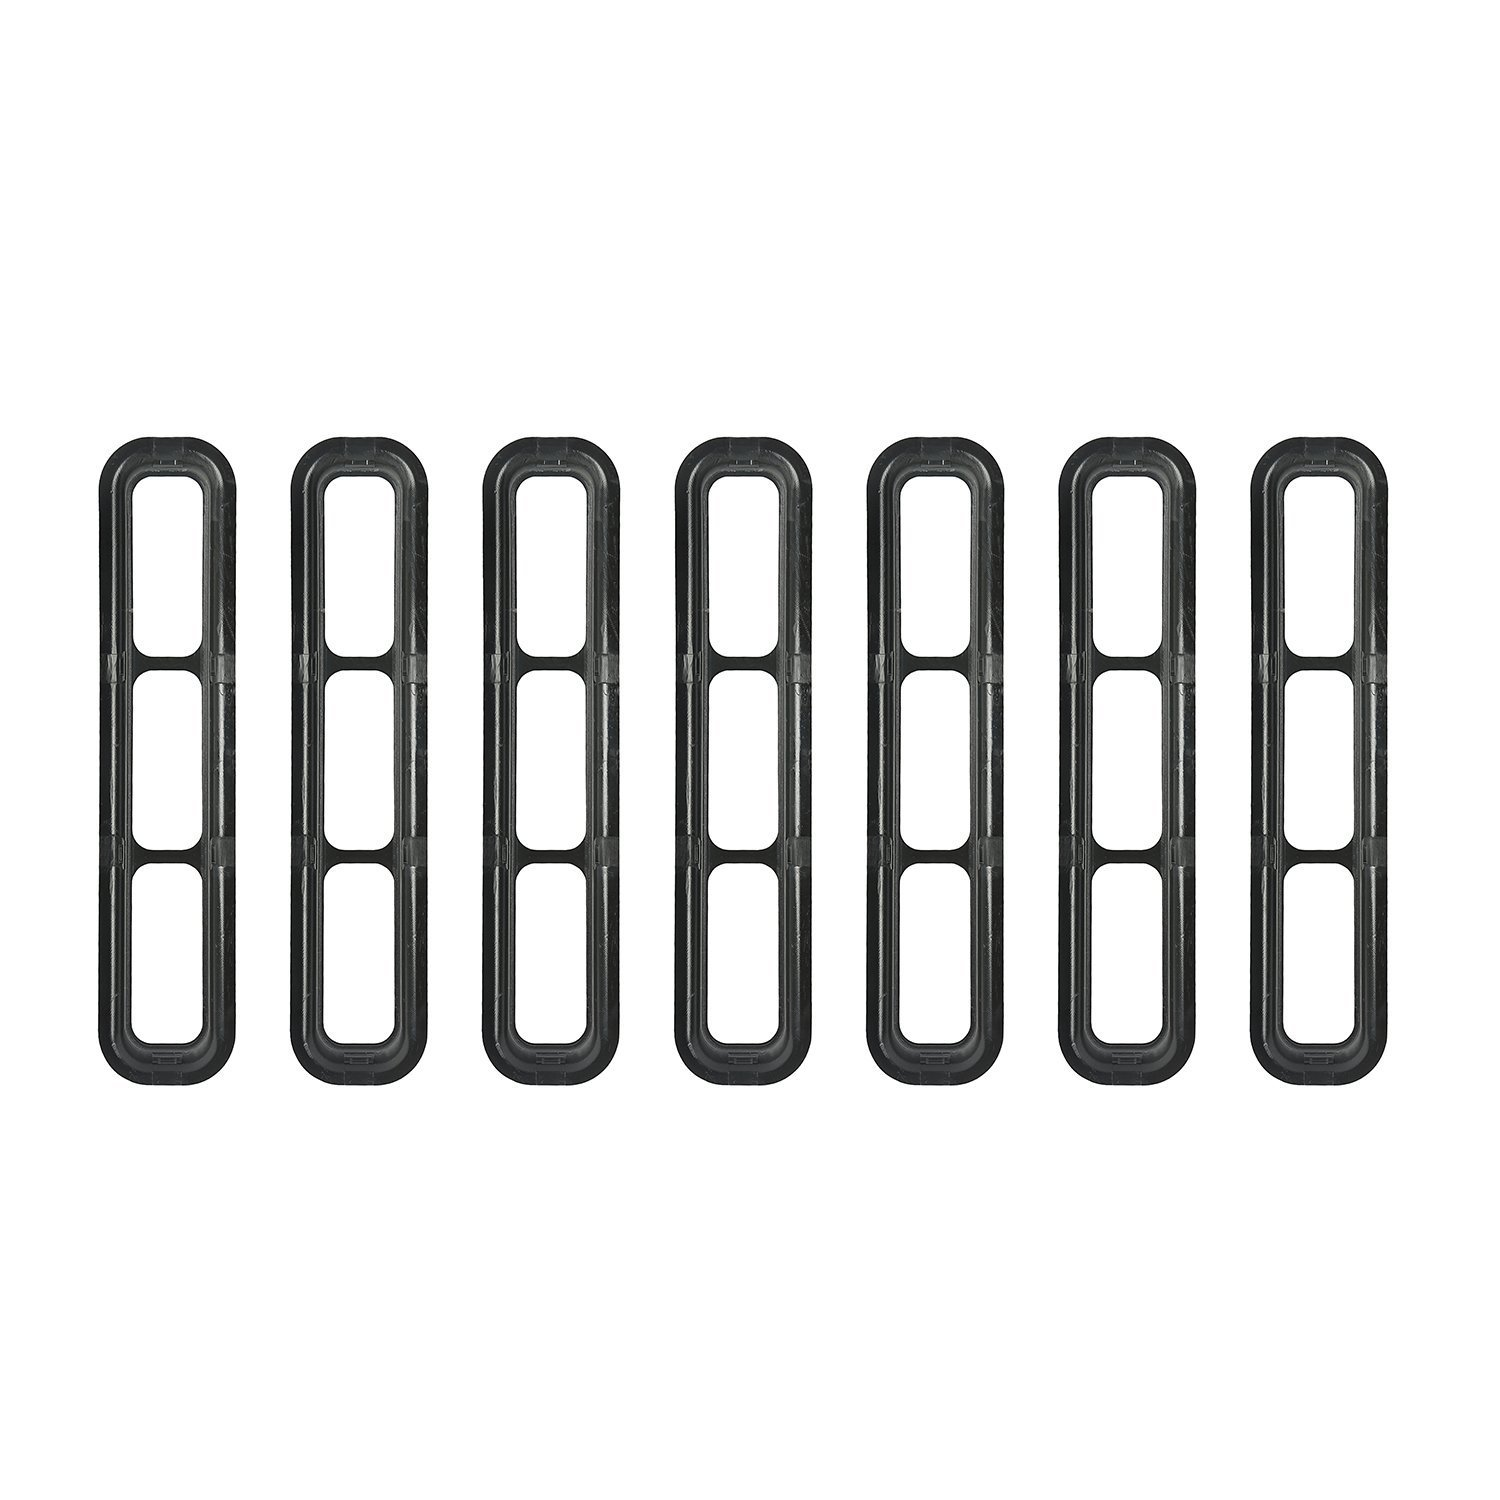 DIYTUNINGS Mesh Grill Inserts Jeep Grille Guard for Jeep Wrangler TJ & Unlimited Rubicon Sahara X Off Road Sport Exterior Accessories Parts 1997-2006 (Black)